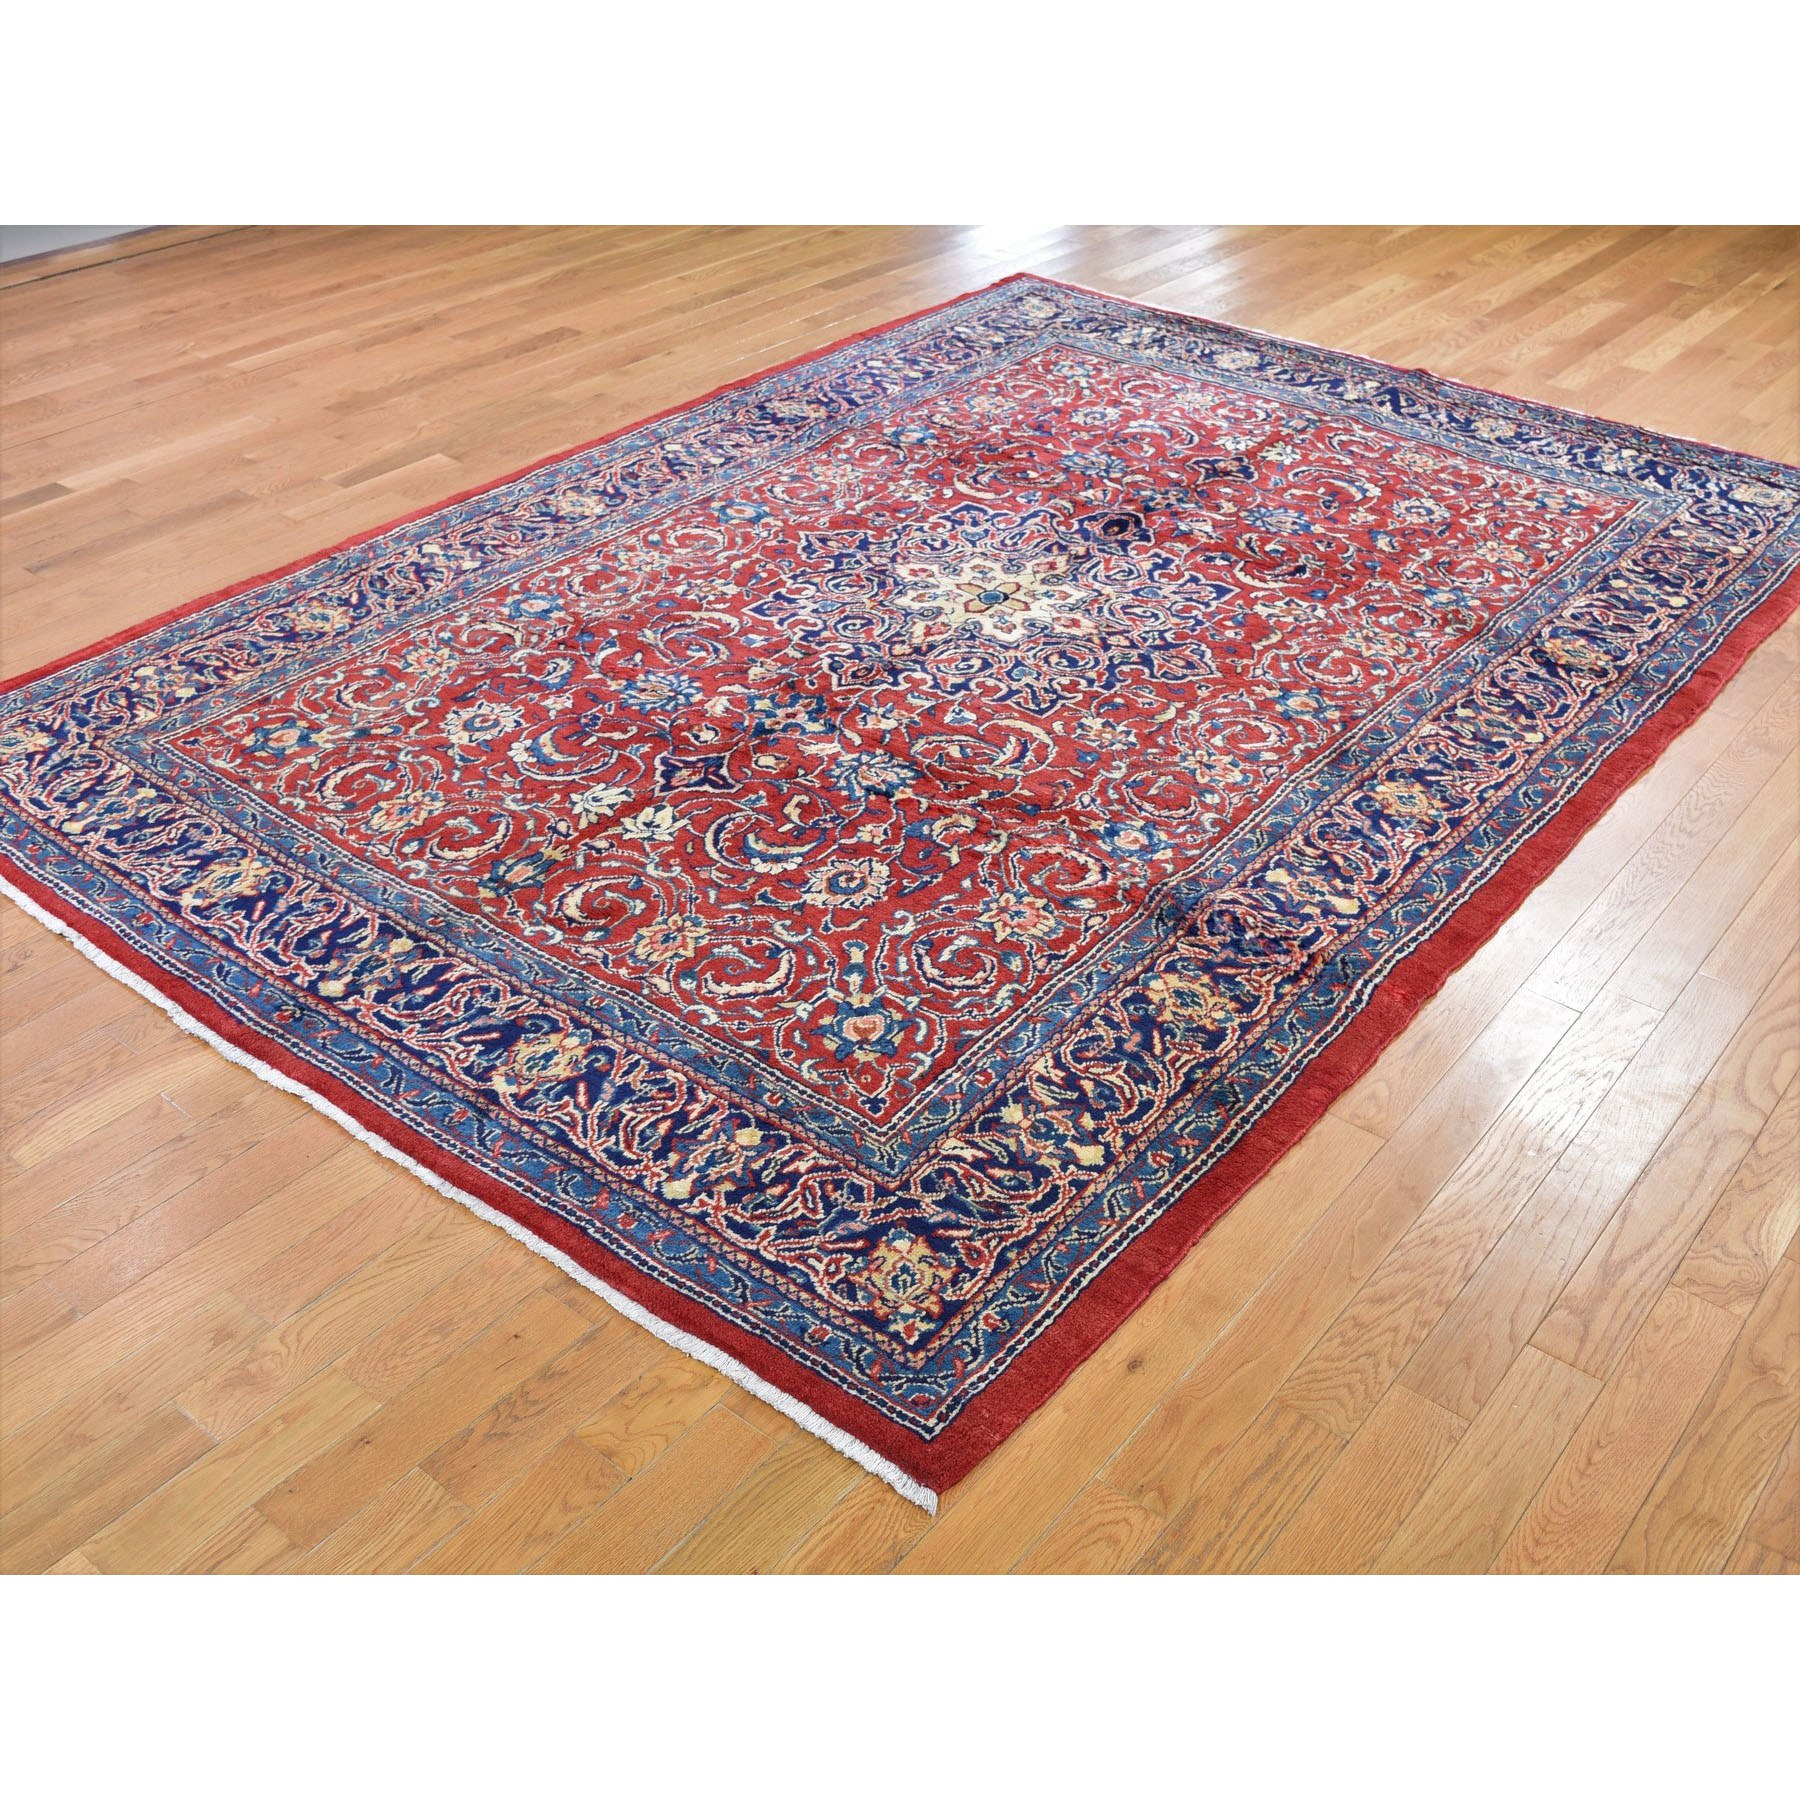 "7'3""x10'5"" Red New Persian Pure Wool Sarouk Mahal Hand Knotted Oriental Rug"